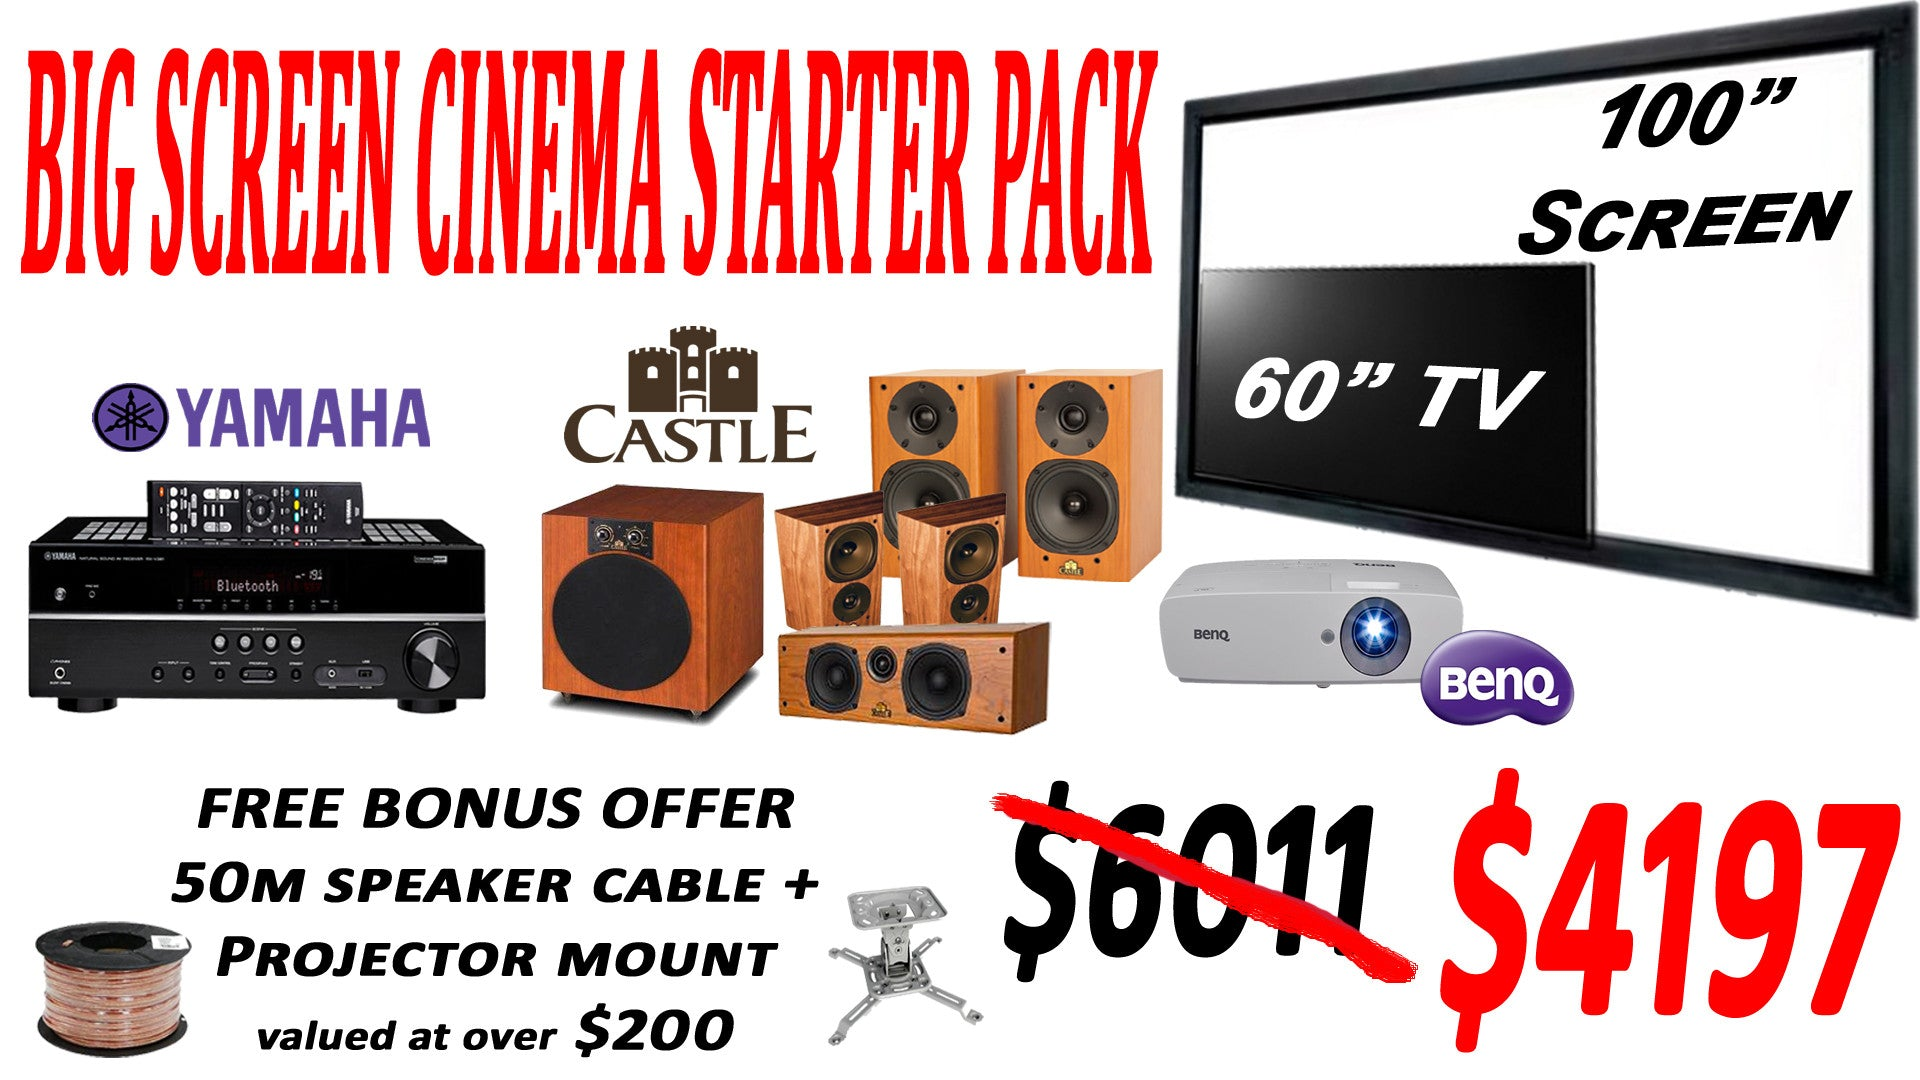 SAVI Systems Perth - BIG SCREEN CINEMA STARTER PACK